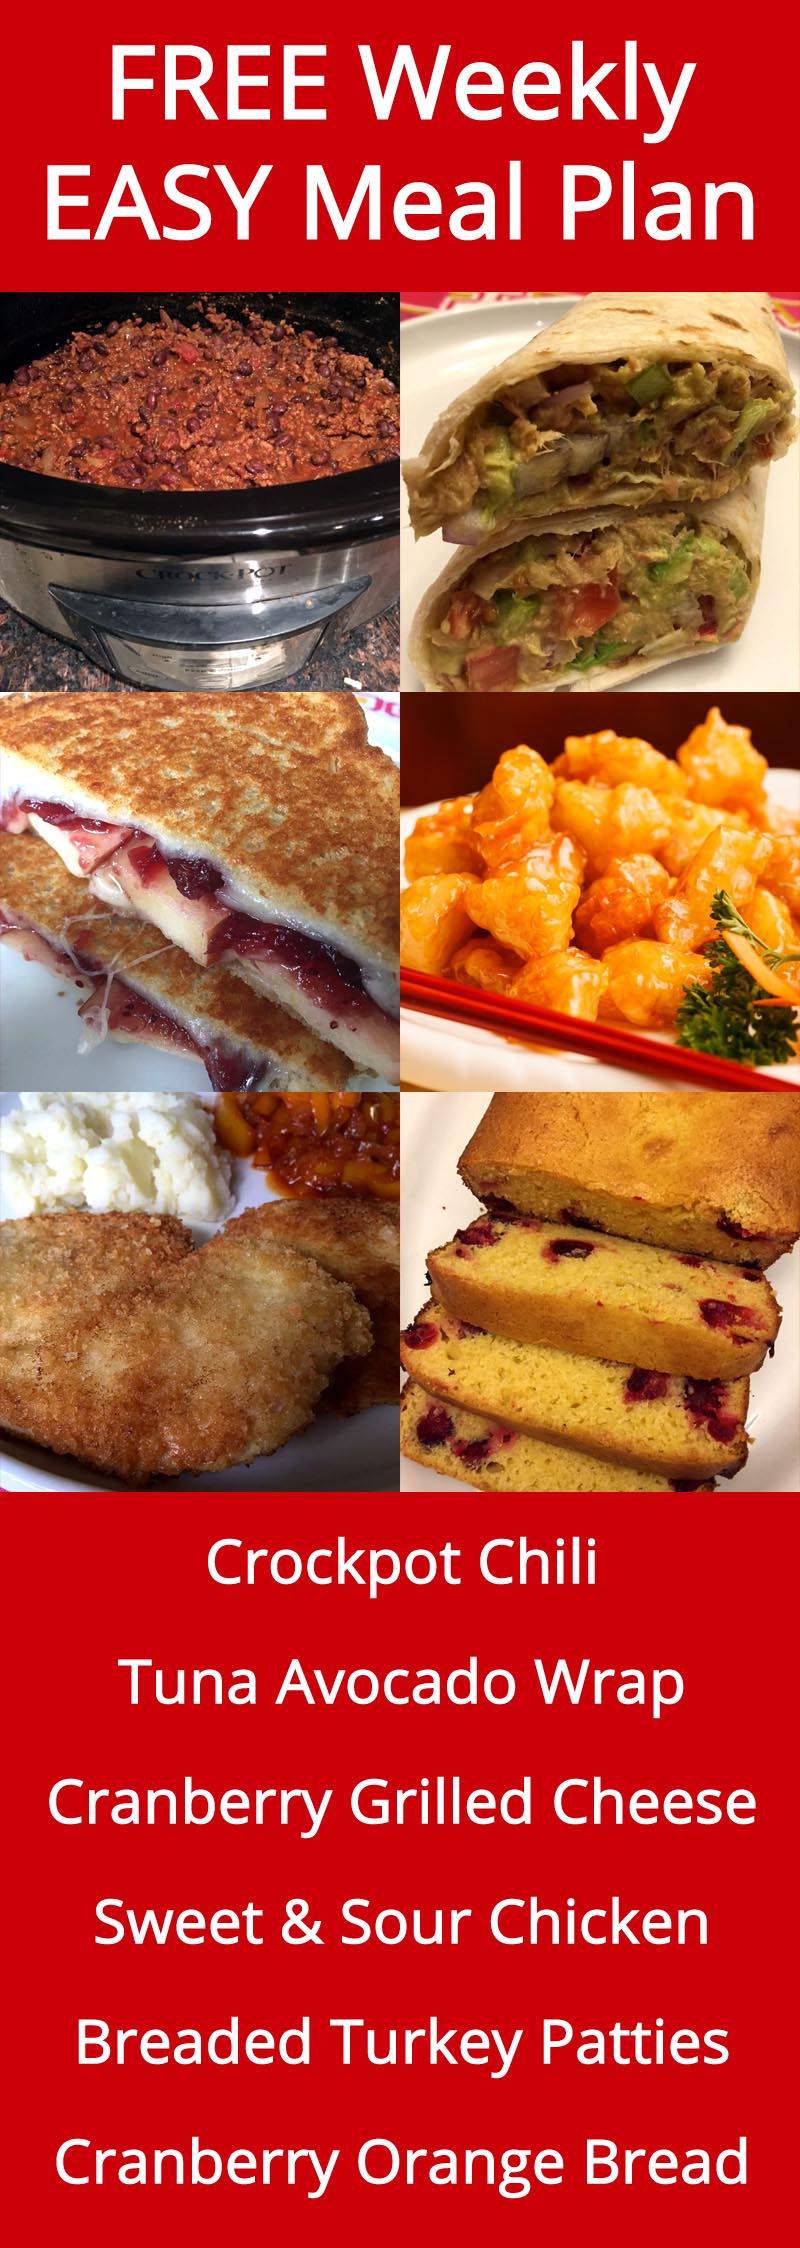 FREE Weekly Meal Plan With Easy Recipes And Dinner Inspiration